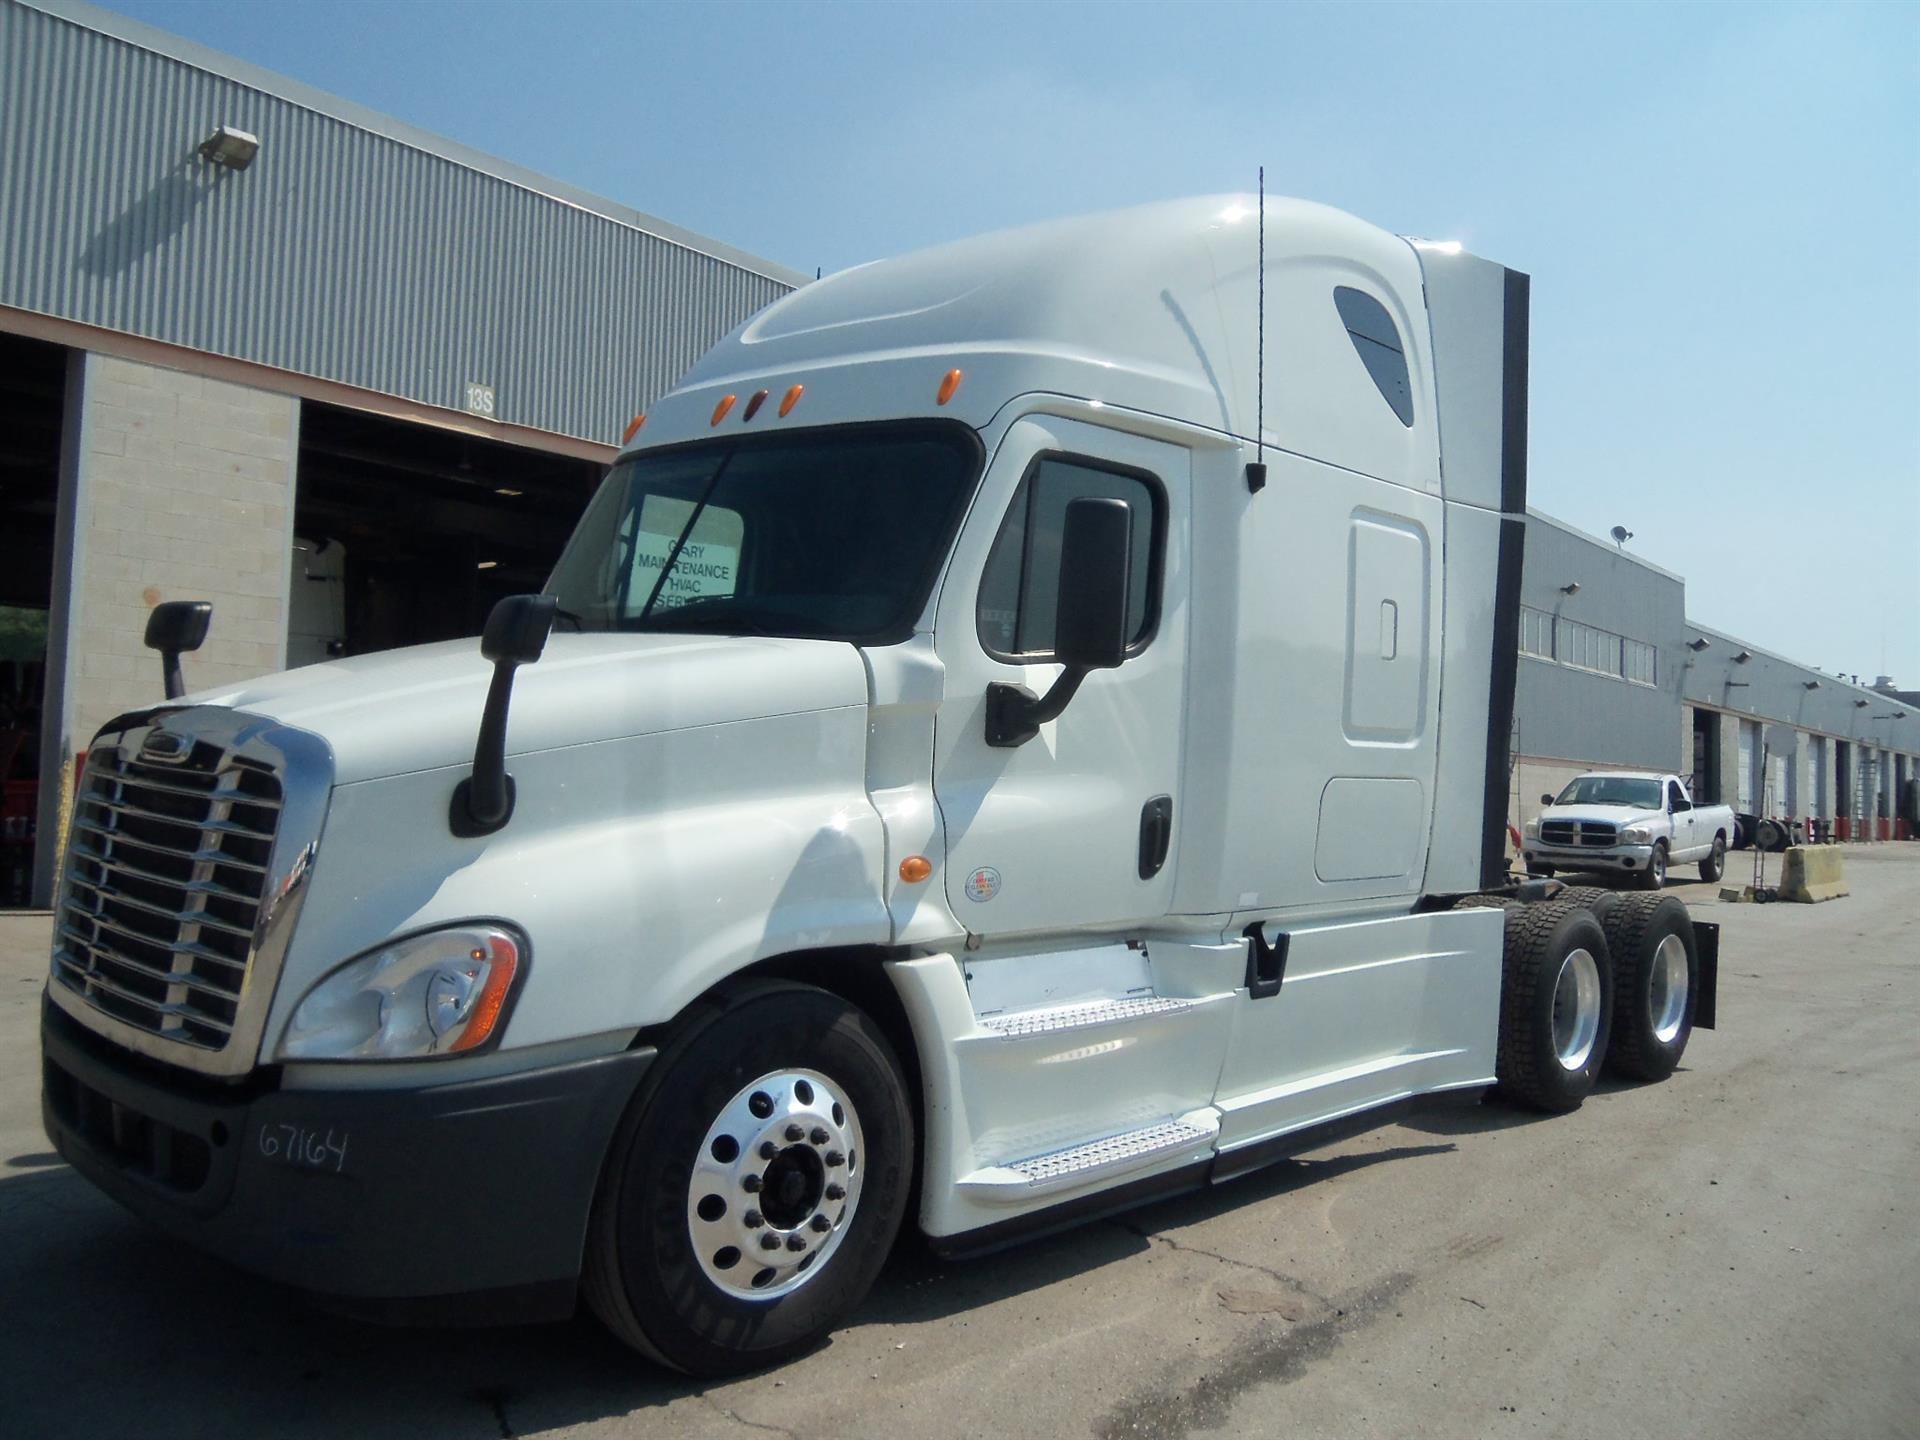 USED 2013 FREIGHTLINER CASCADIA SLEEPER TRUCK #129211